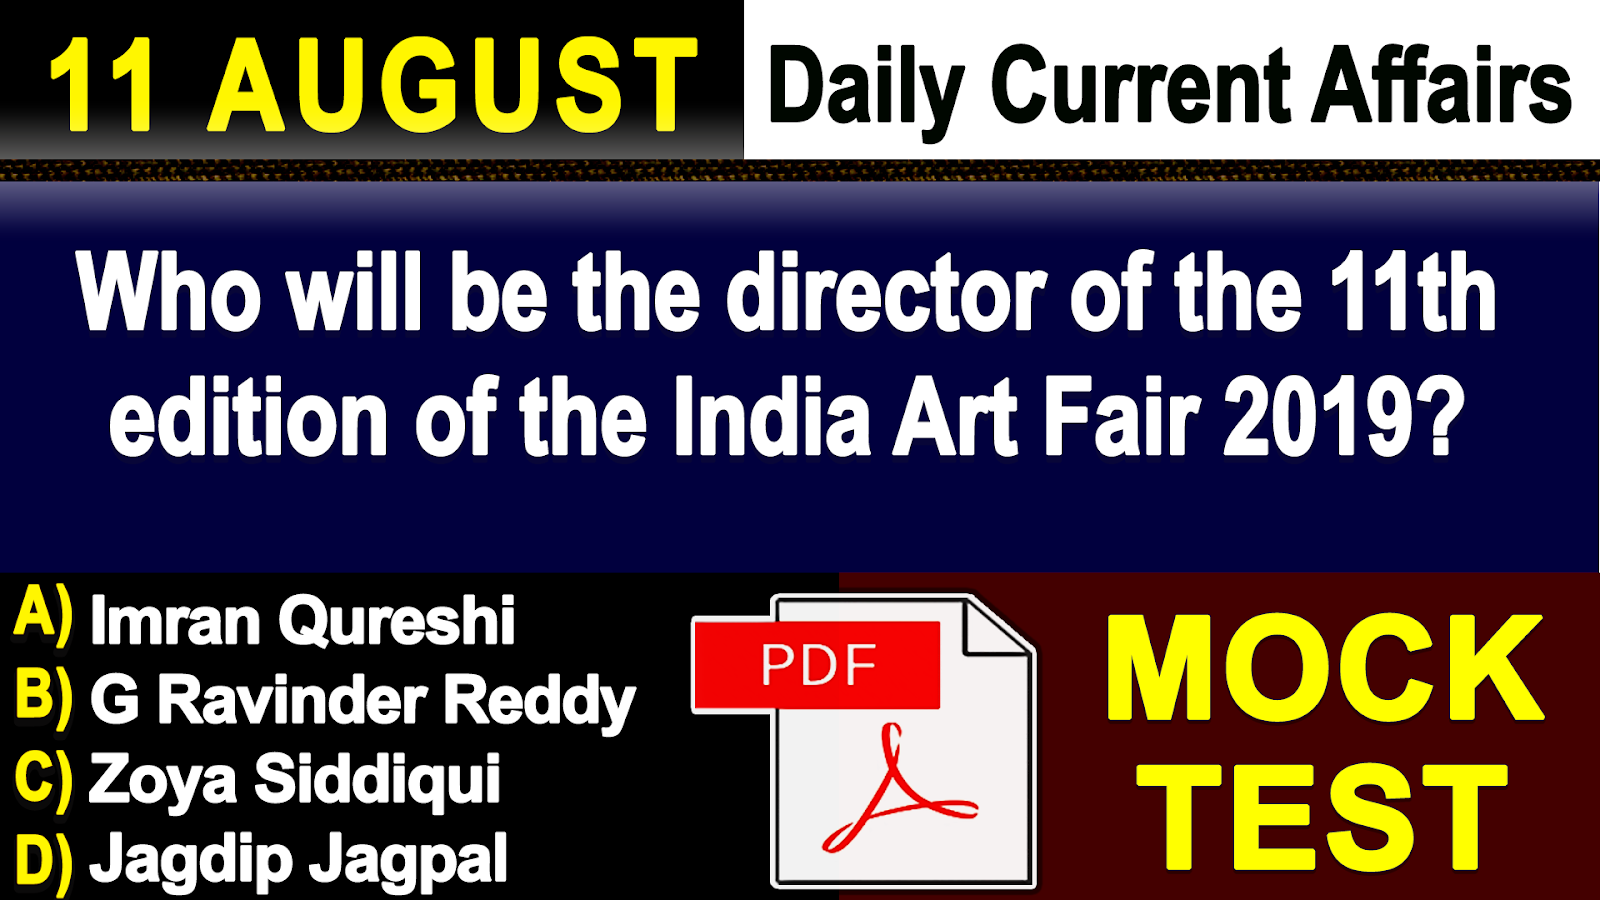 GK & Current Affairs Quiz: August 11, 2018